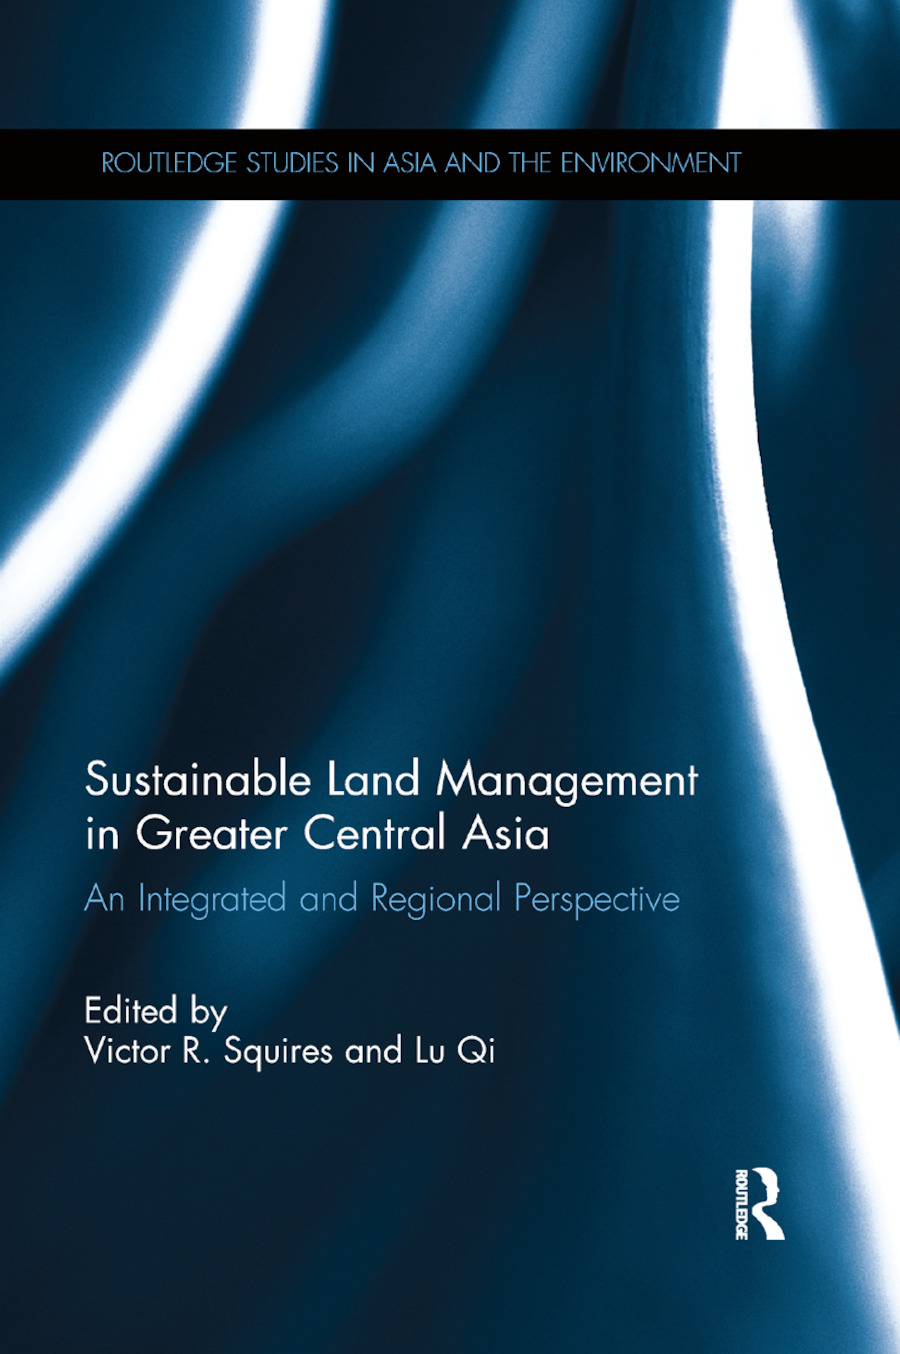 Sustainable Land Management in Greater Central Asia